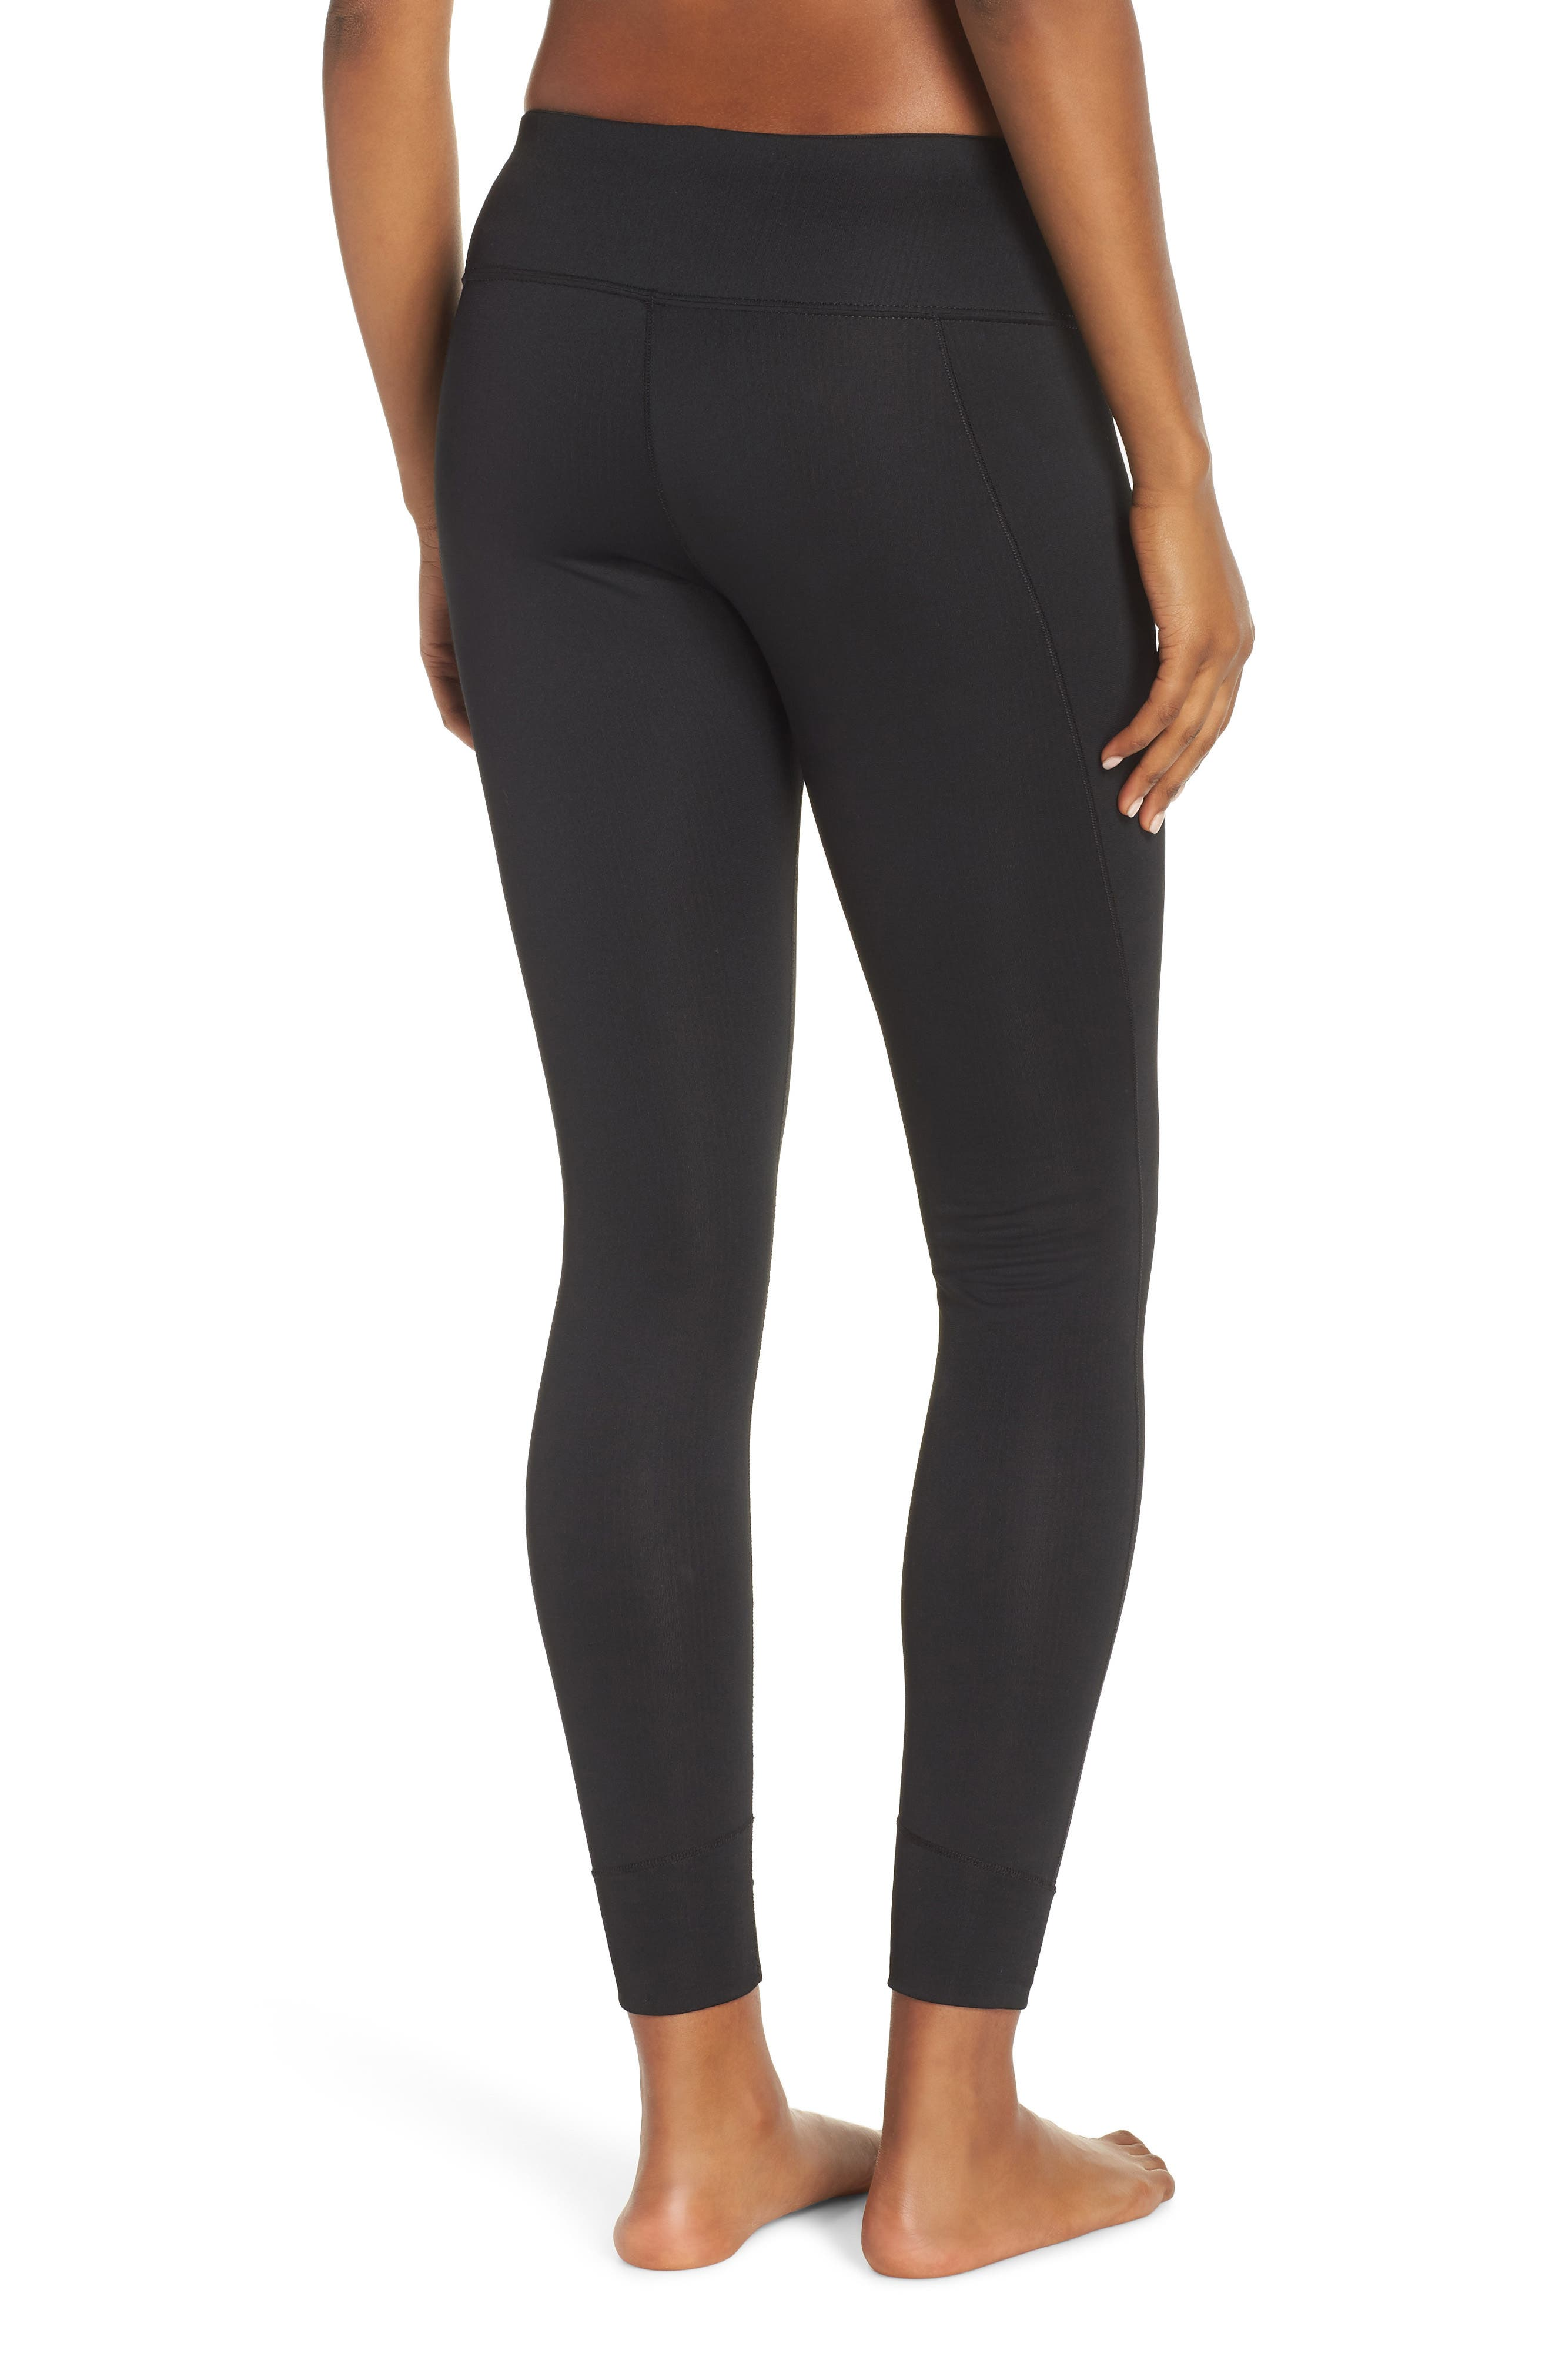 PATAGONIA, Capilene Midweight Base Layer Tights, Alternate thumbnail 2, color, BLACK